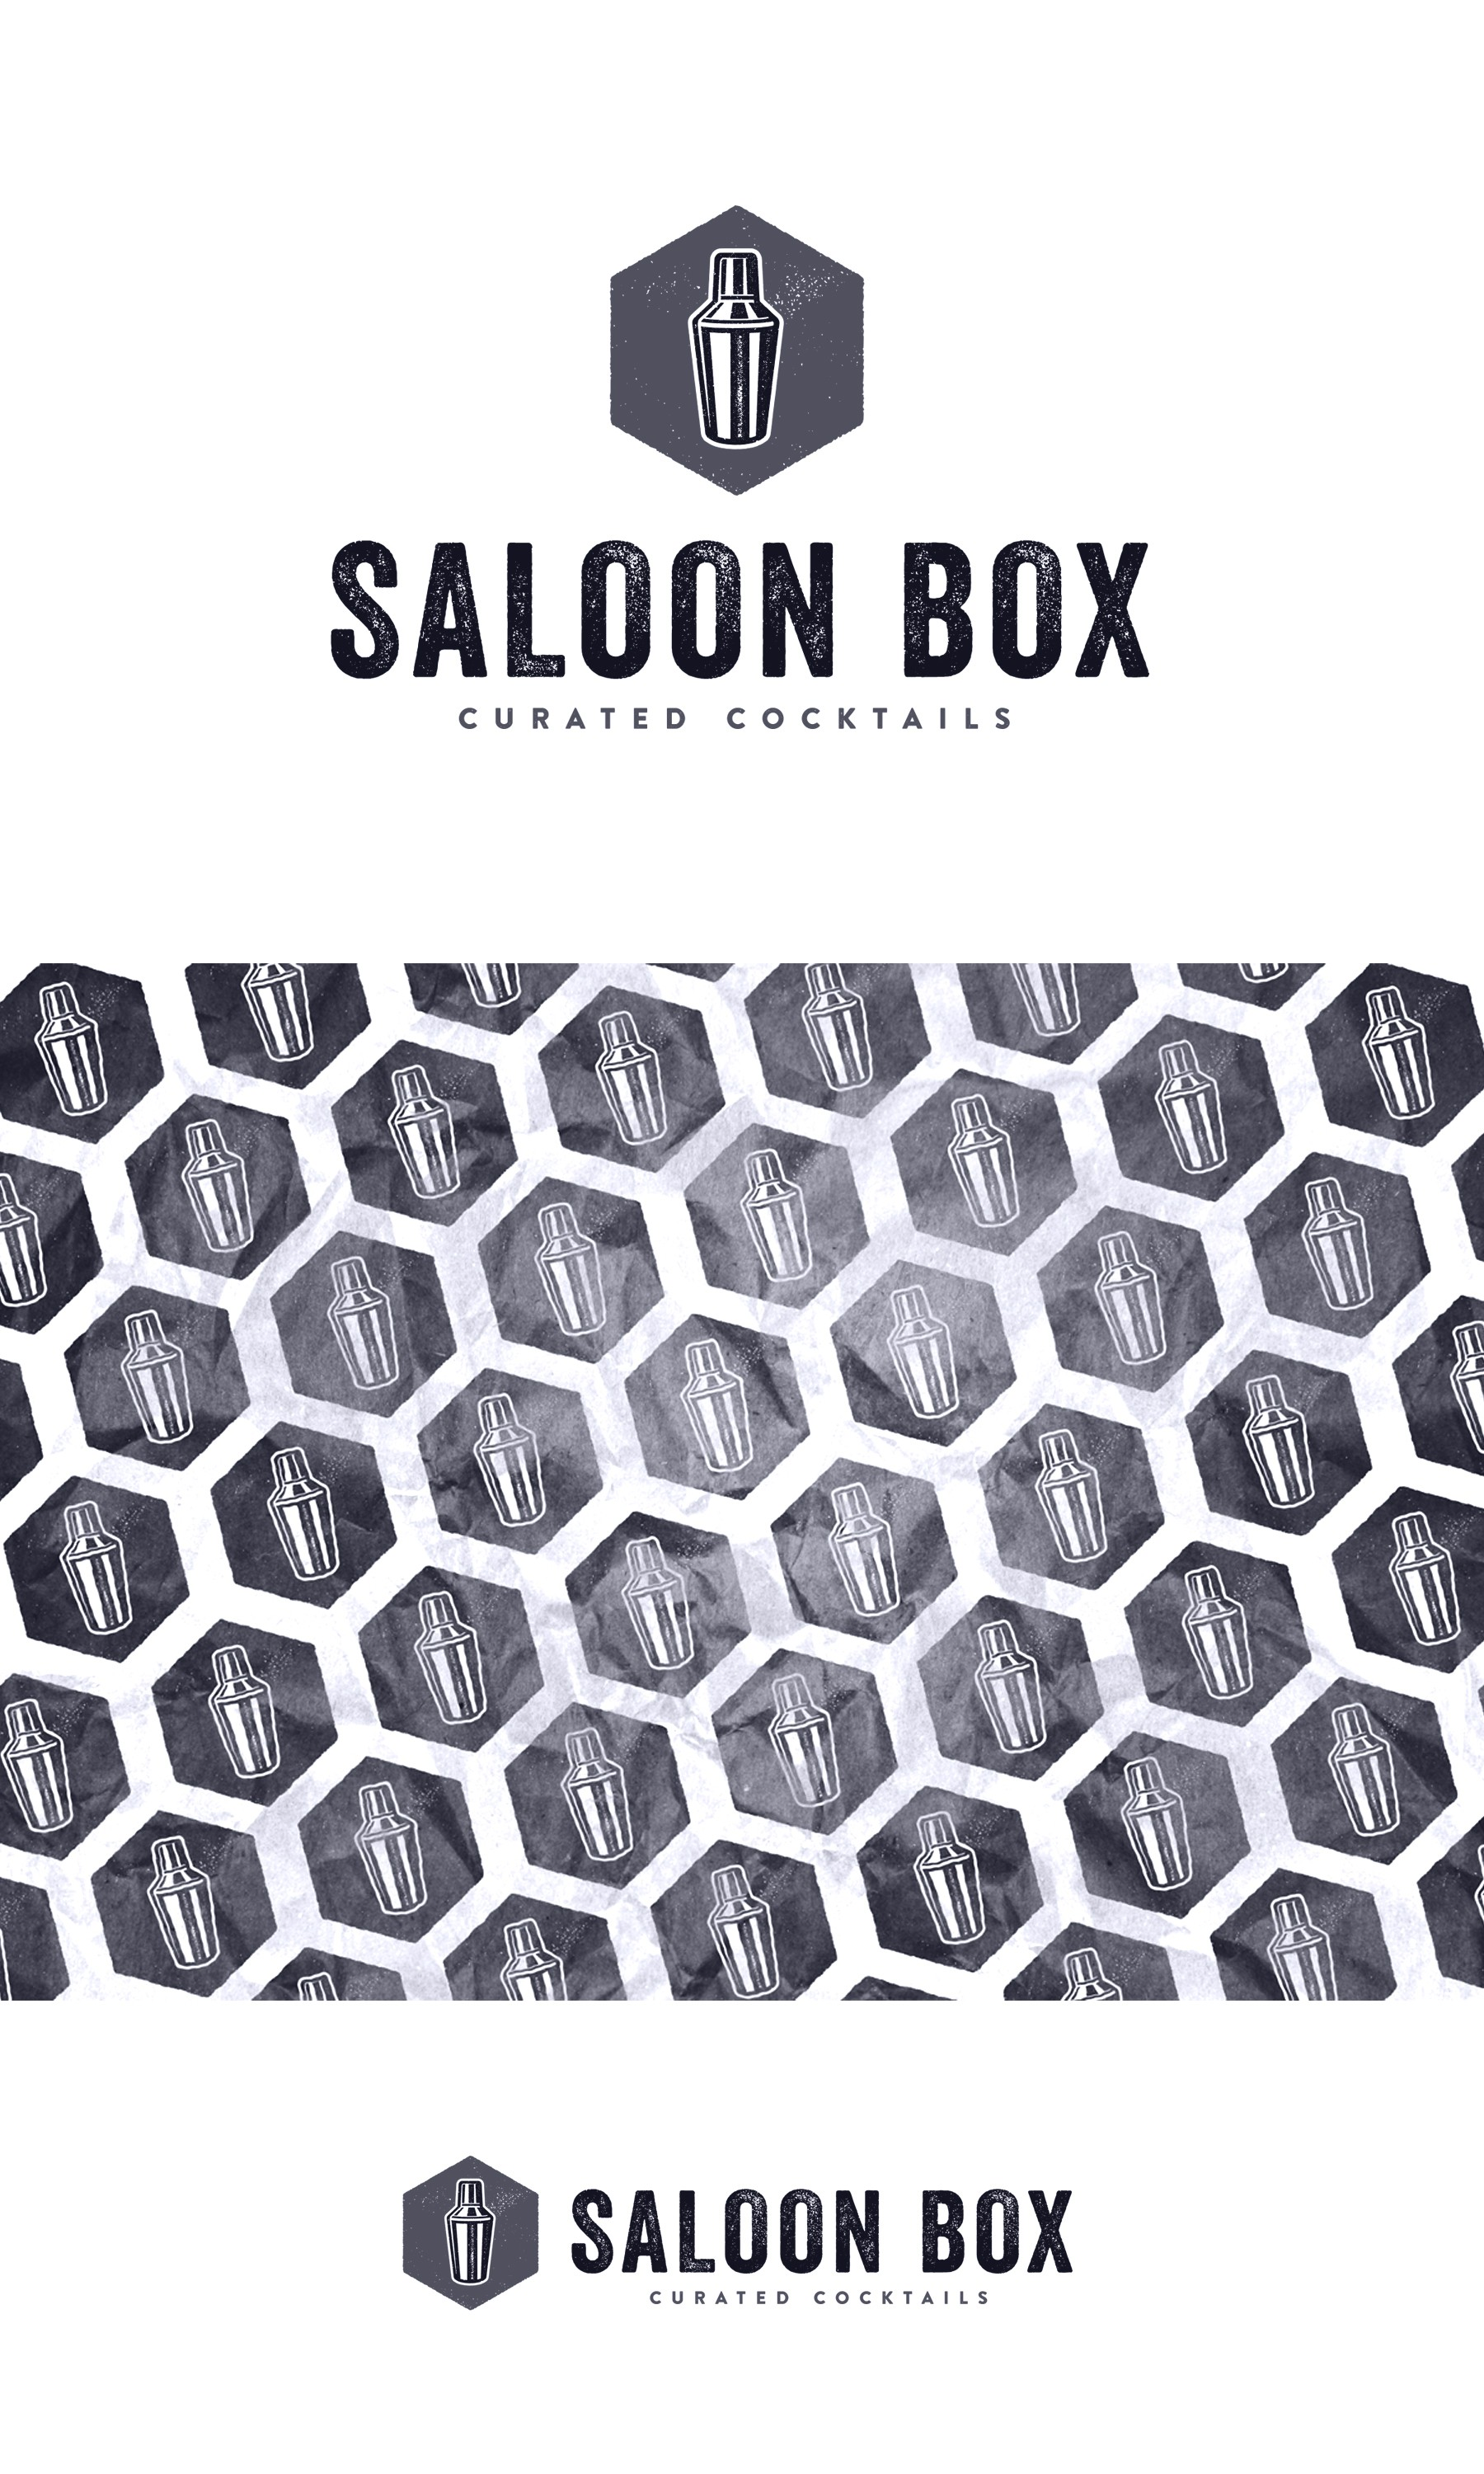 Company logo for cocktail kit in box subscription service called SaloonBox